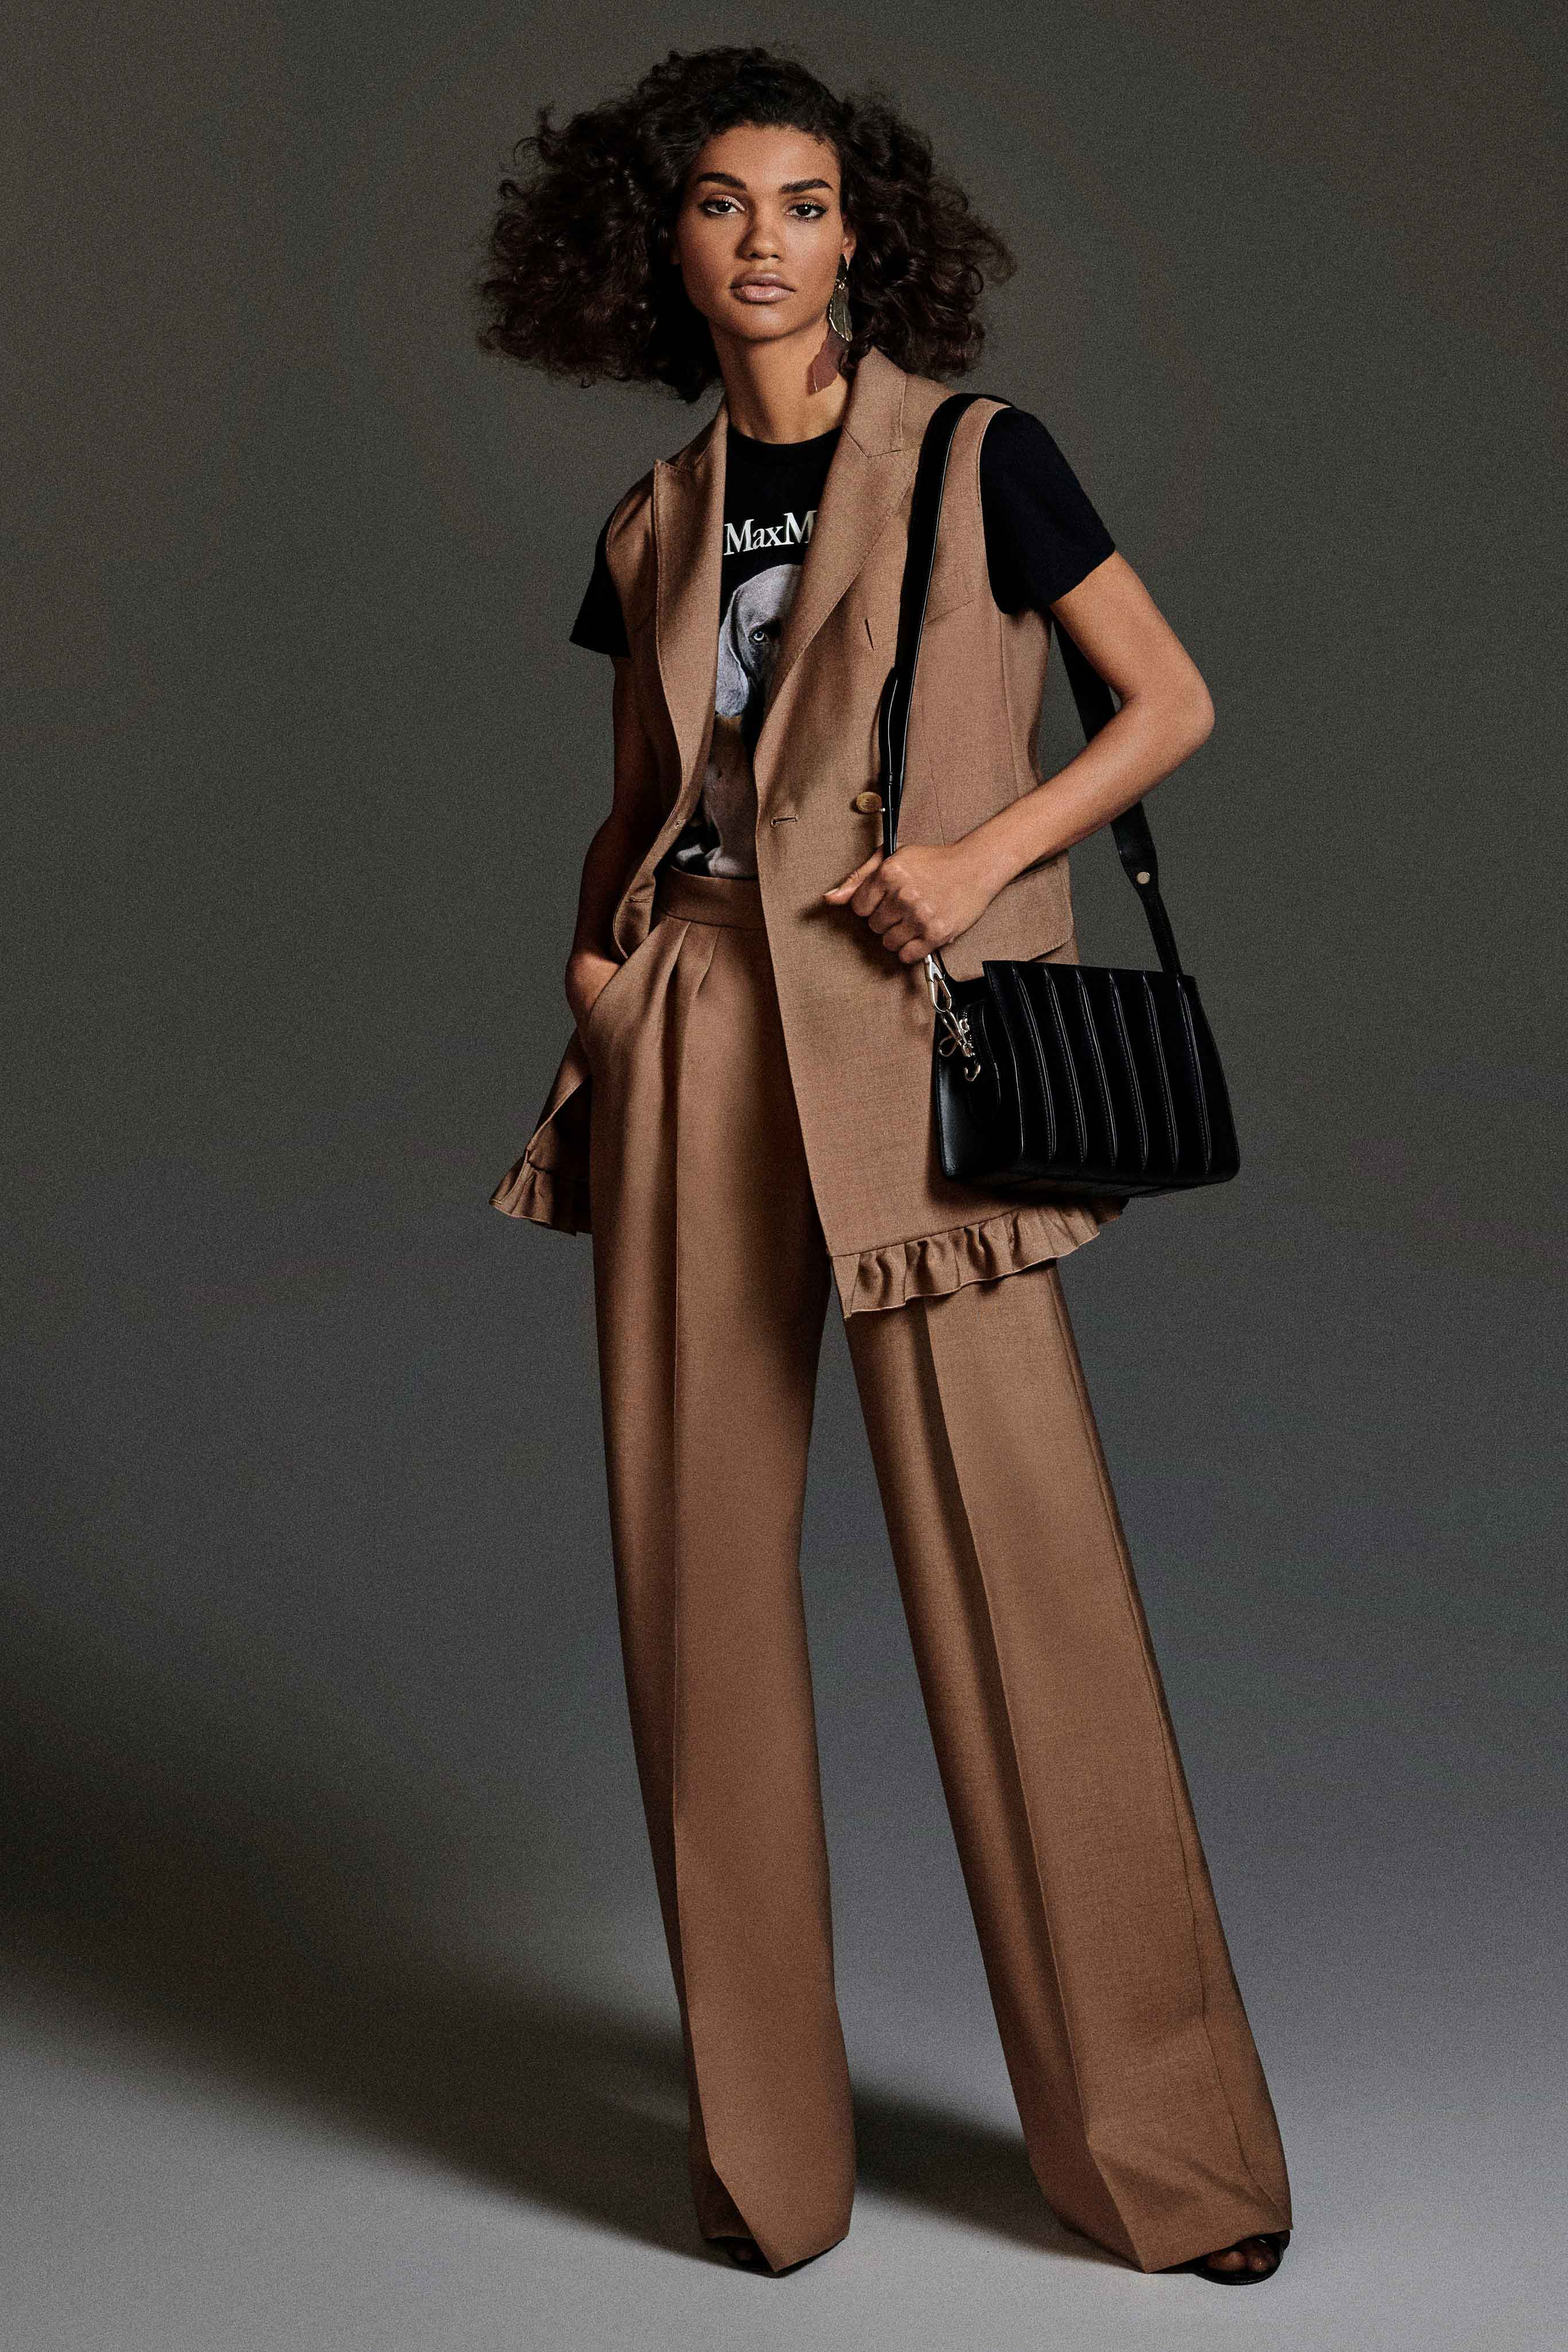 Max Mara Pre fall 2020 Lookbook trends runway coverage Ready To Wear Vogue sleeveless jacket vest